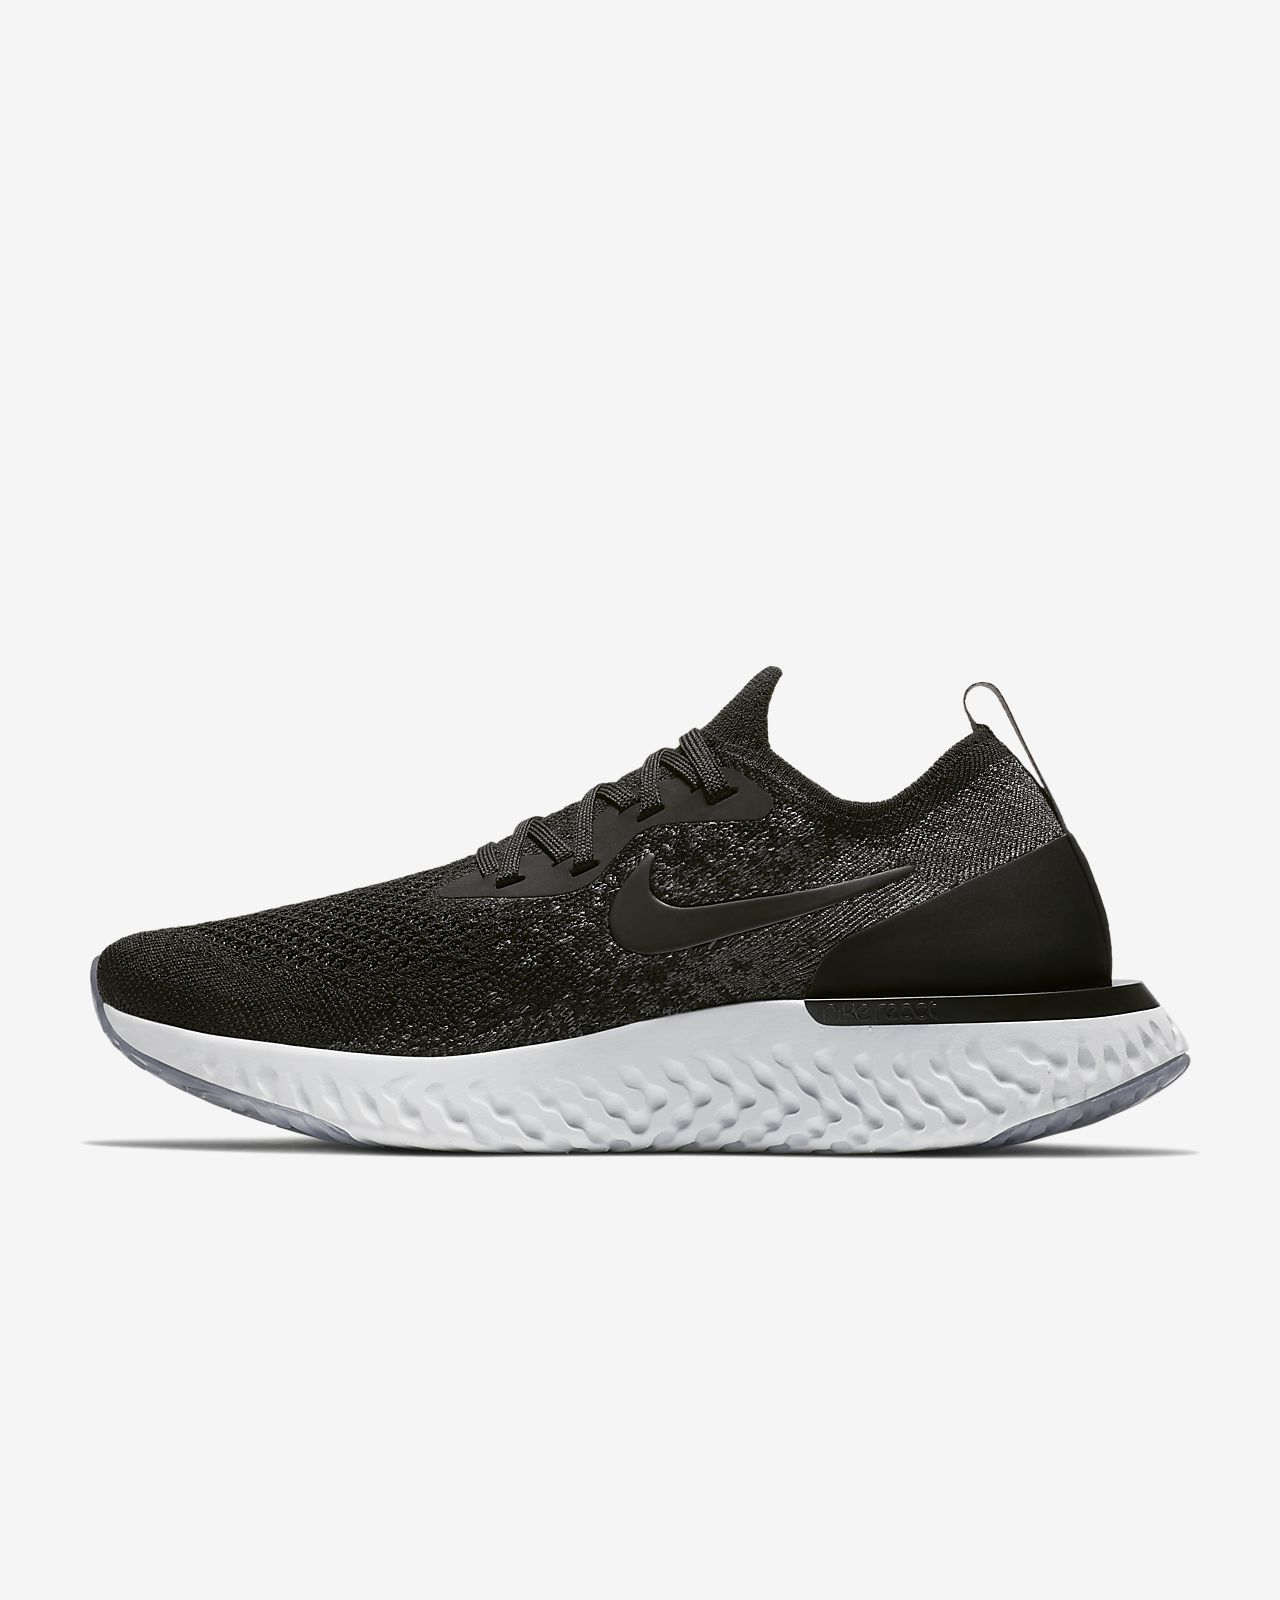 nike shoes epic react fly knits women's 919123